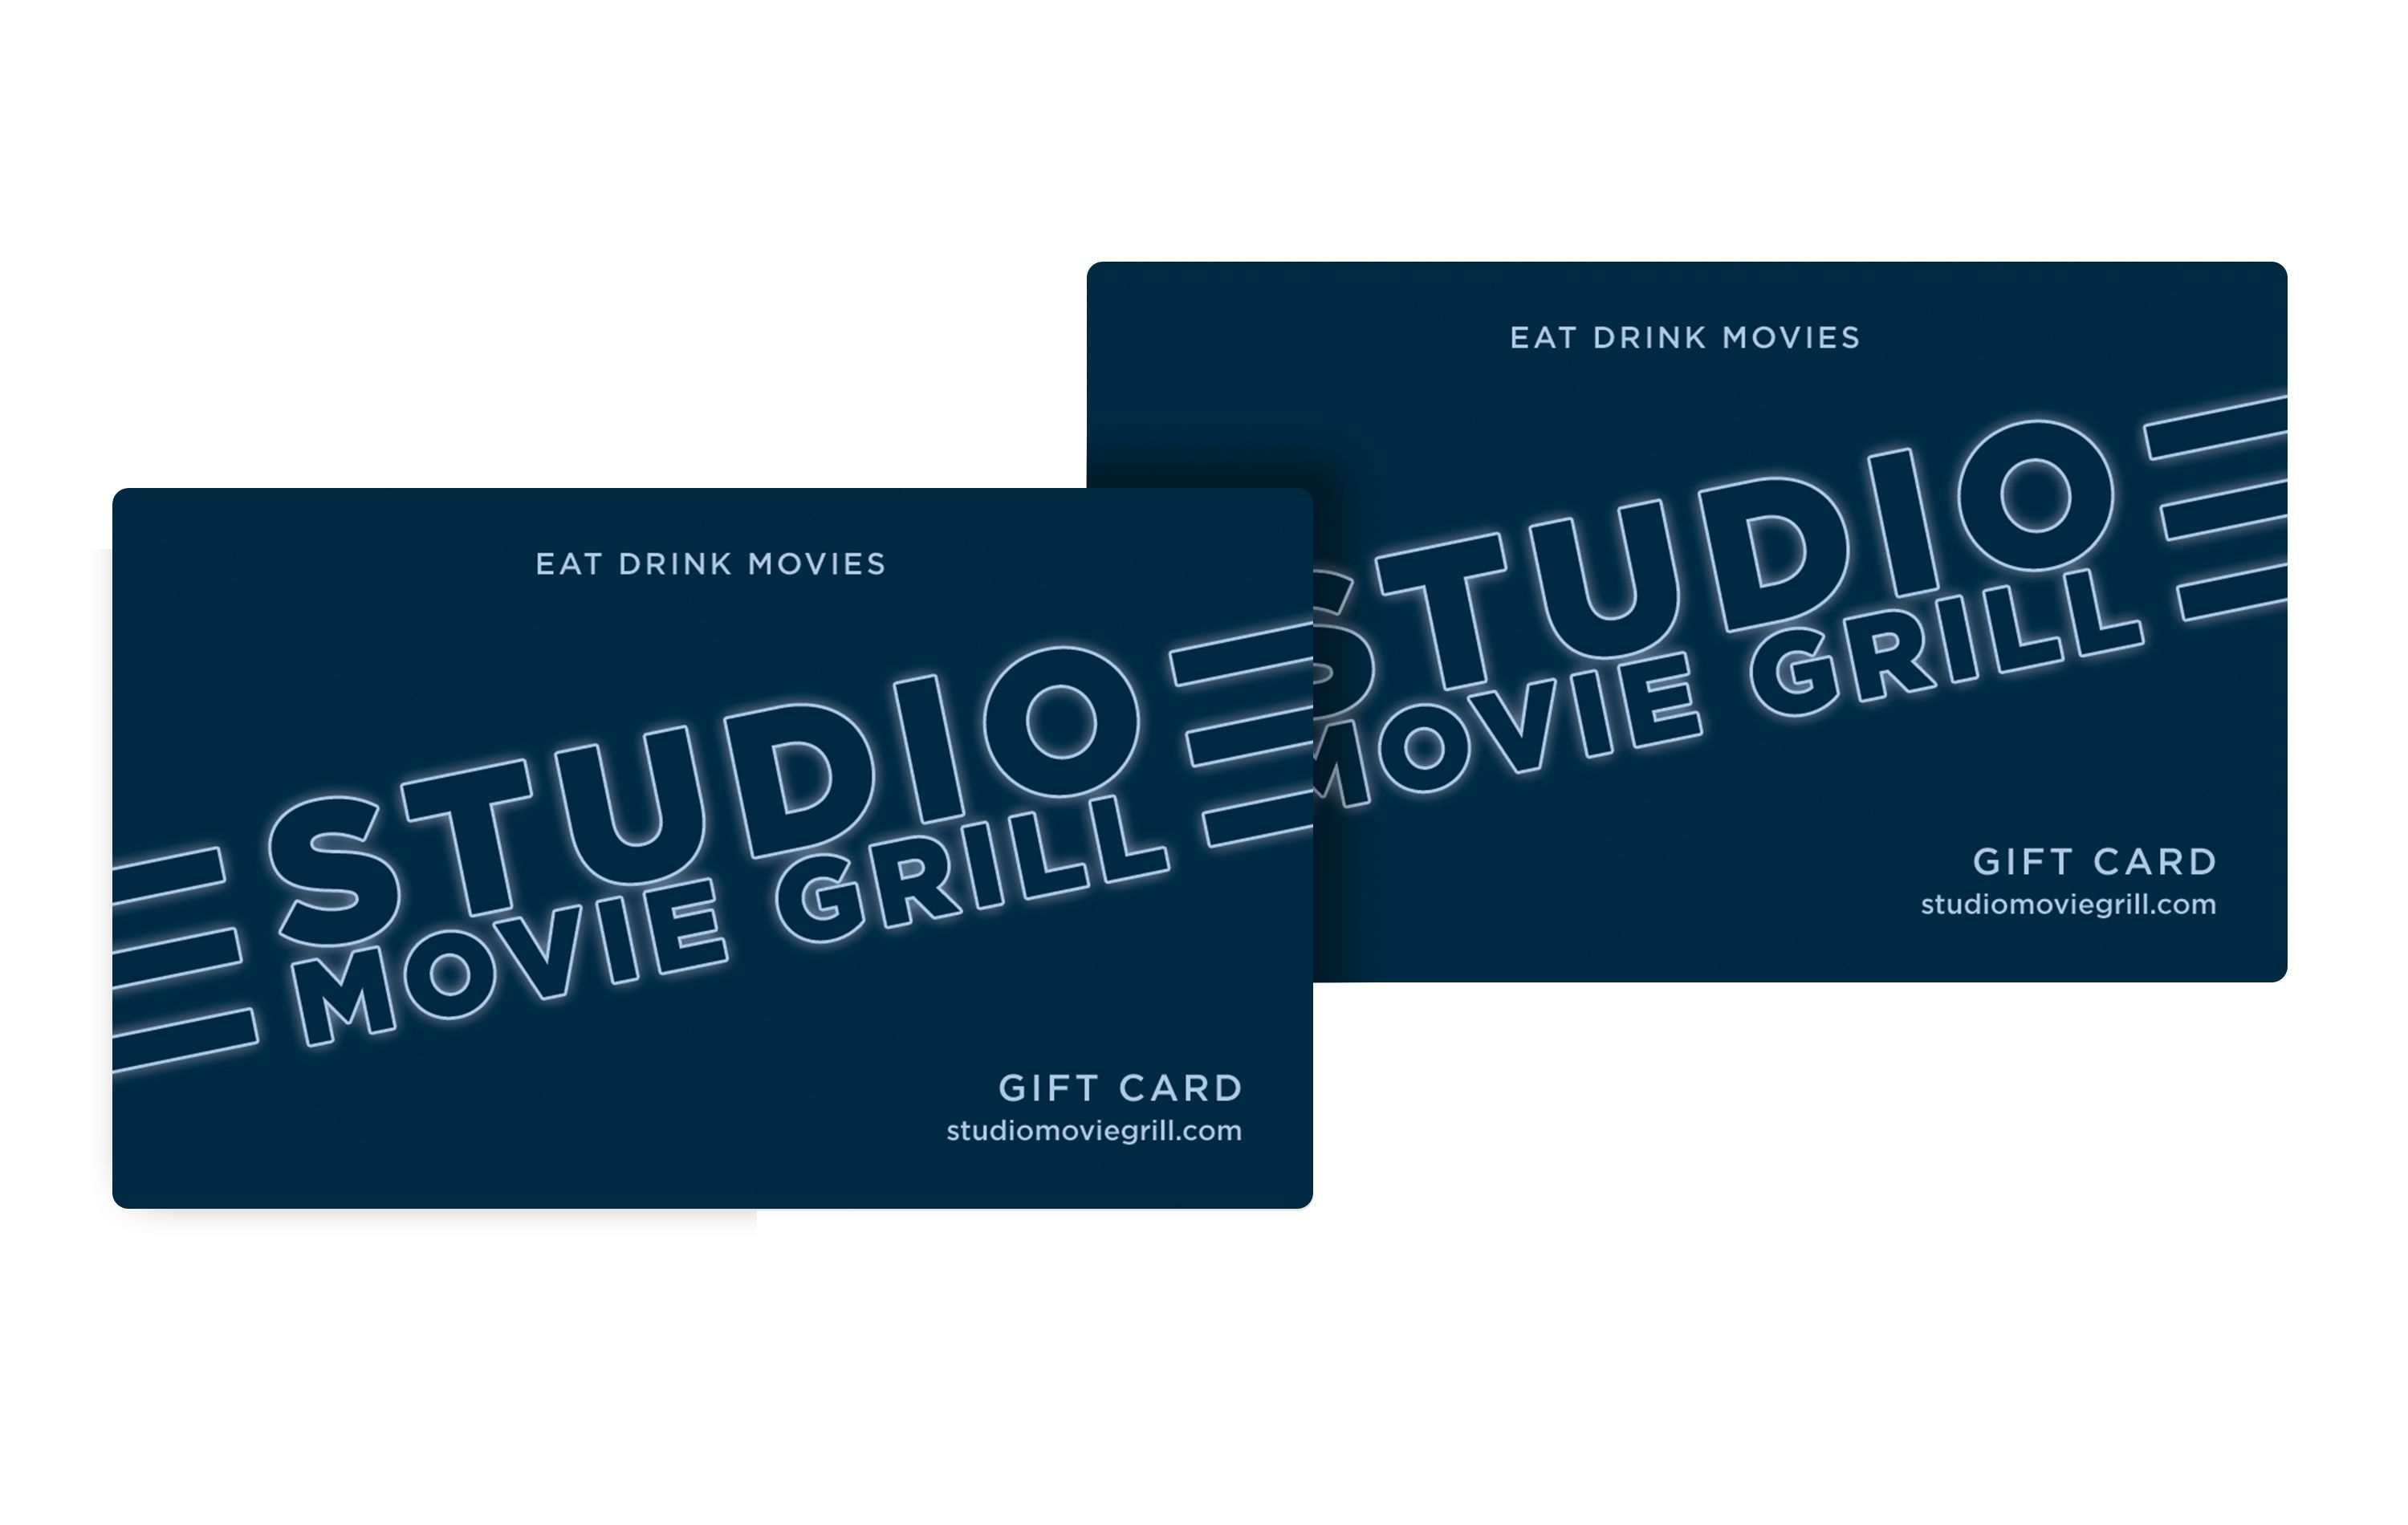 Studio Movie Grill Grilling gifts, Gift card, Egift card